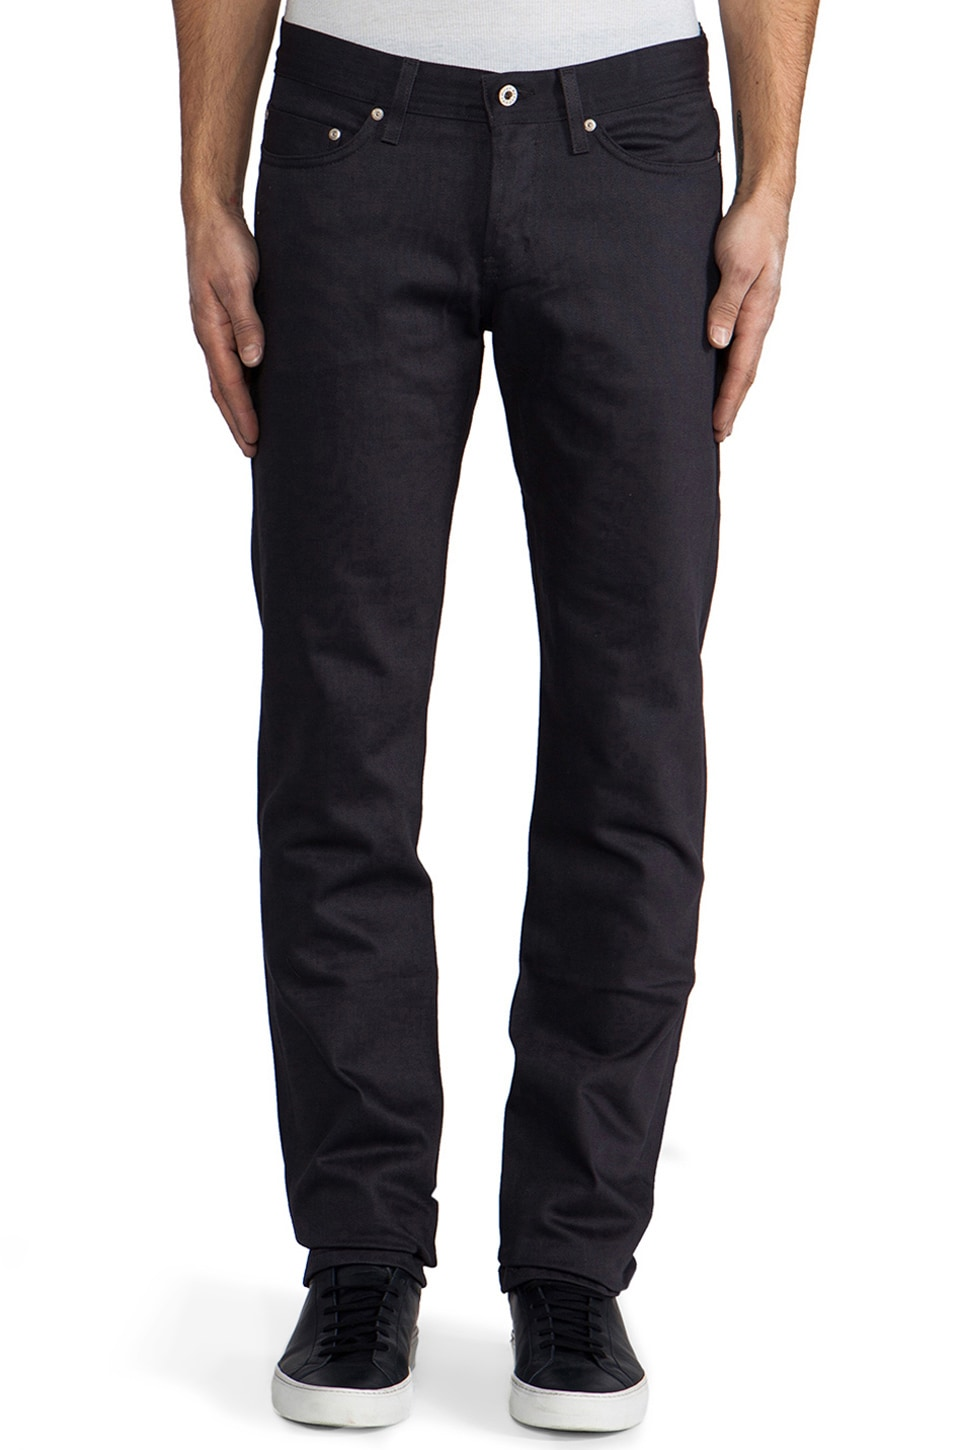 Naked & Famous Denim Weird Guy Navy Selvedge Chino 12 oz. in Navy